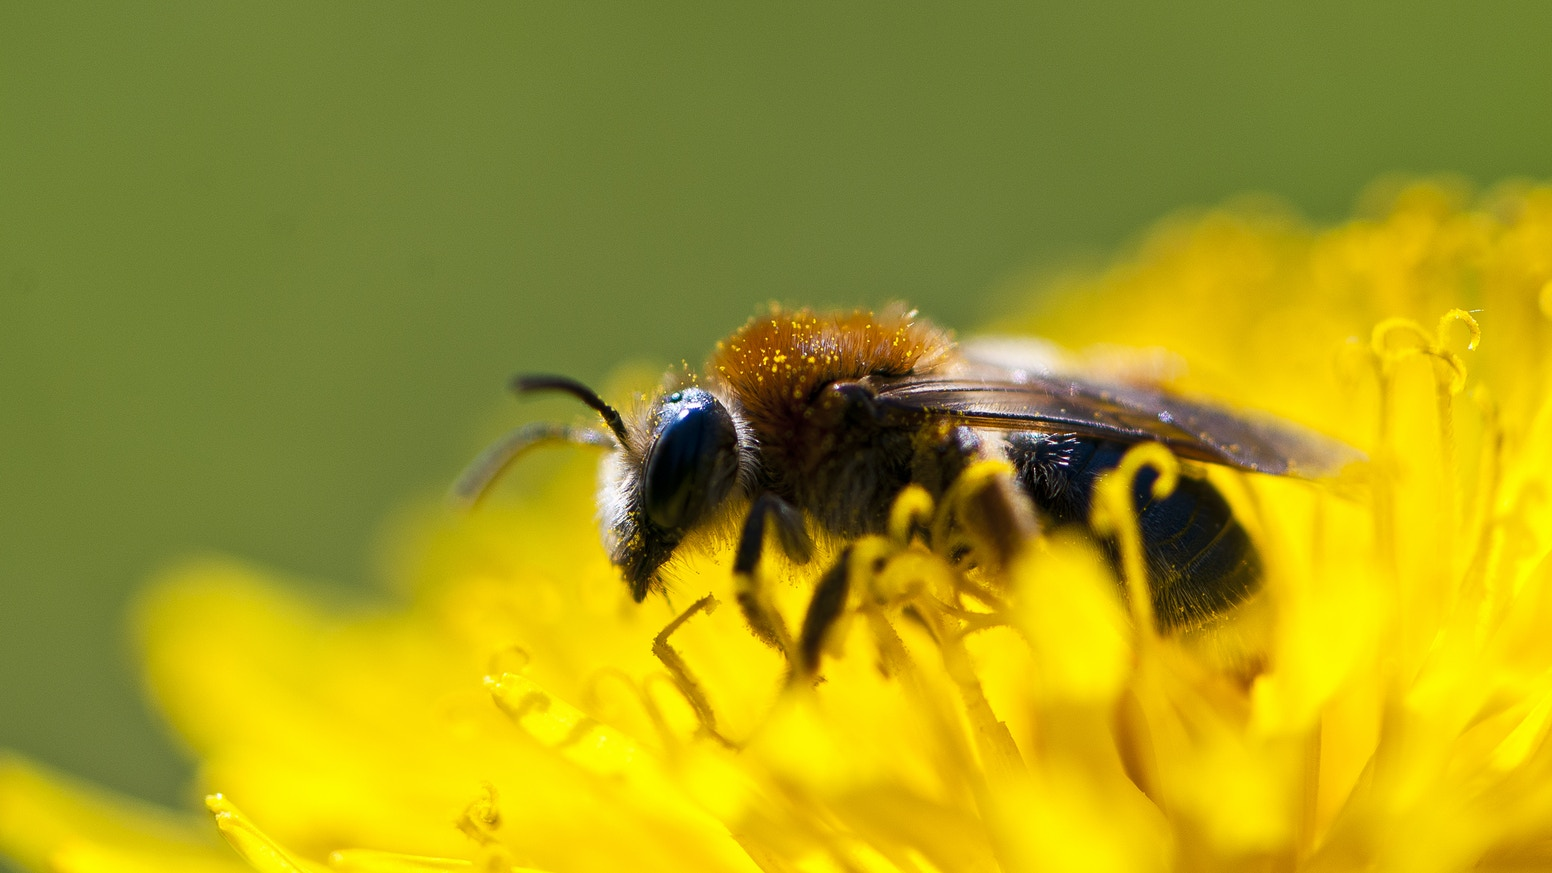 90% of Britain's bees are Solitary Bees. They are crucial pollinators yet are little known or conserved. This film aims to change that.